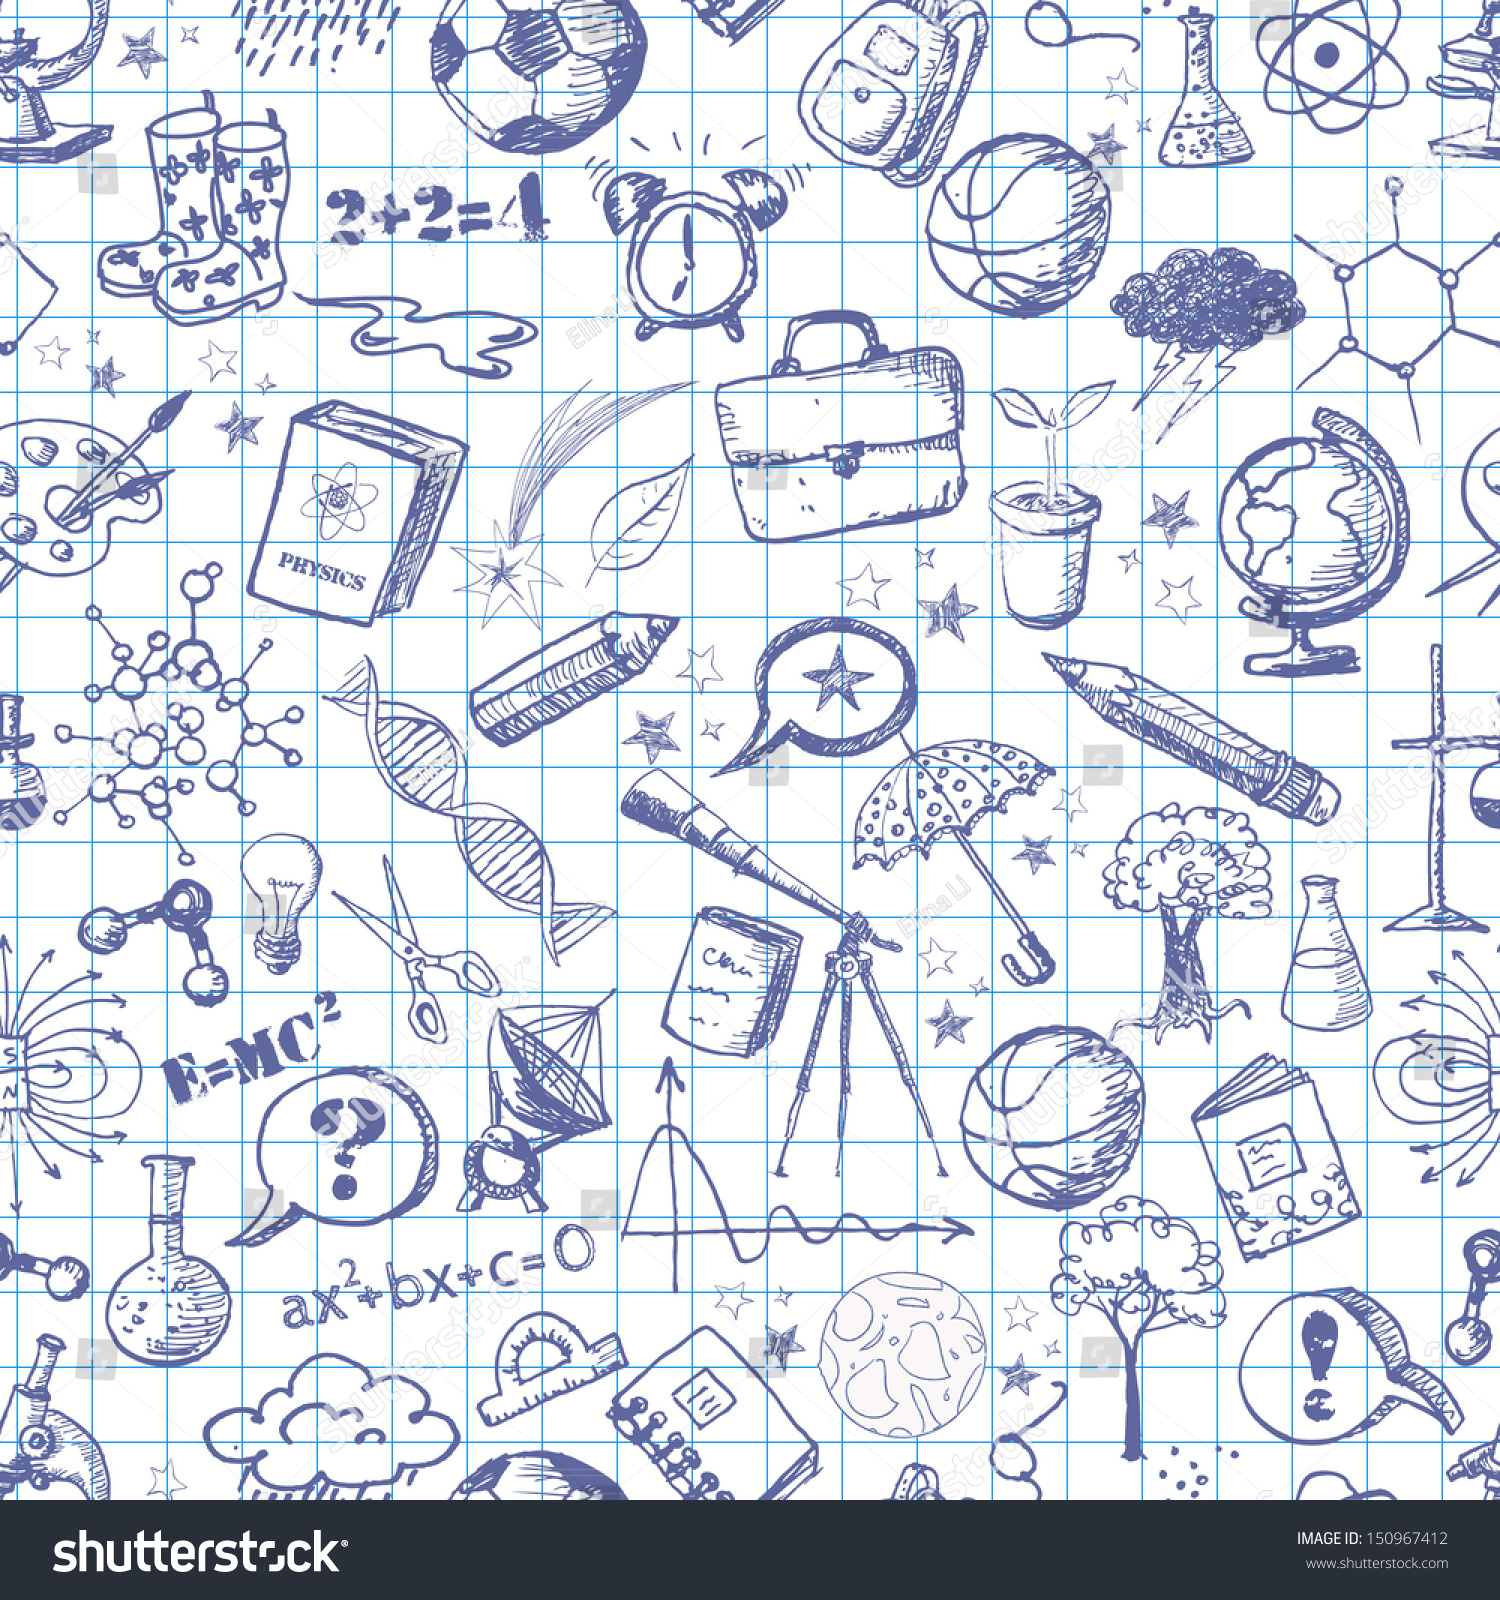 Cute Kid Wallpapers Free Download Back School Pen Sketch Seamless Background Stock Vector